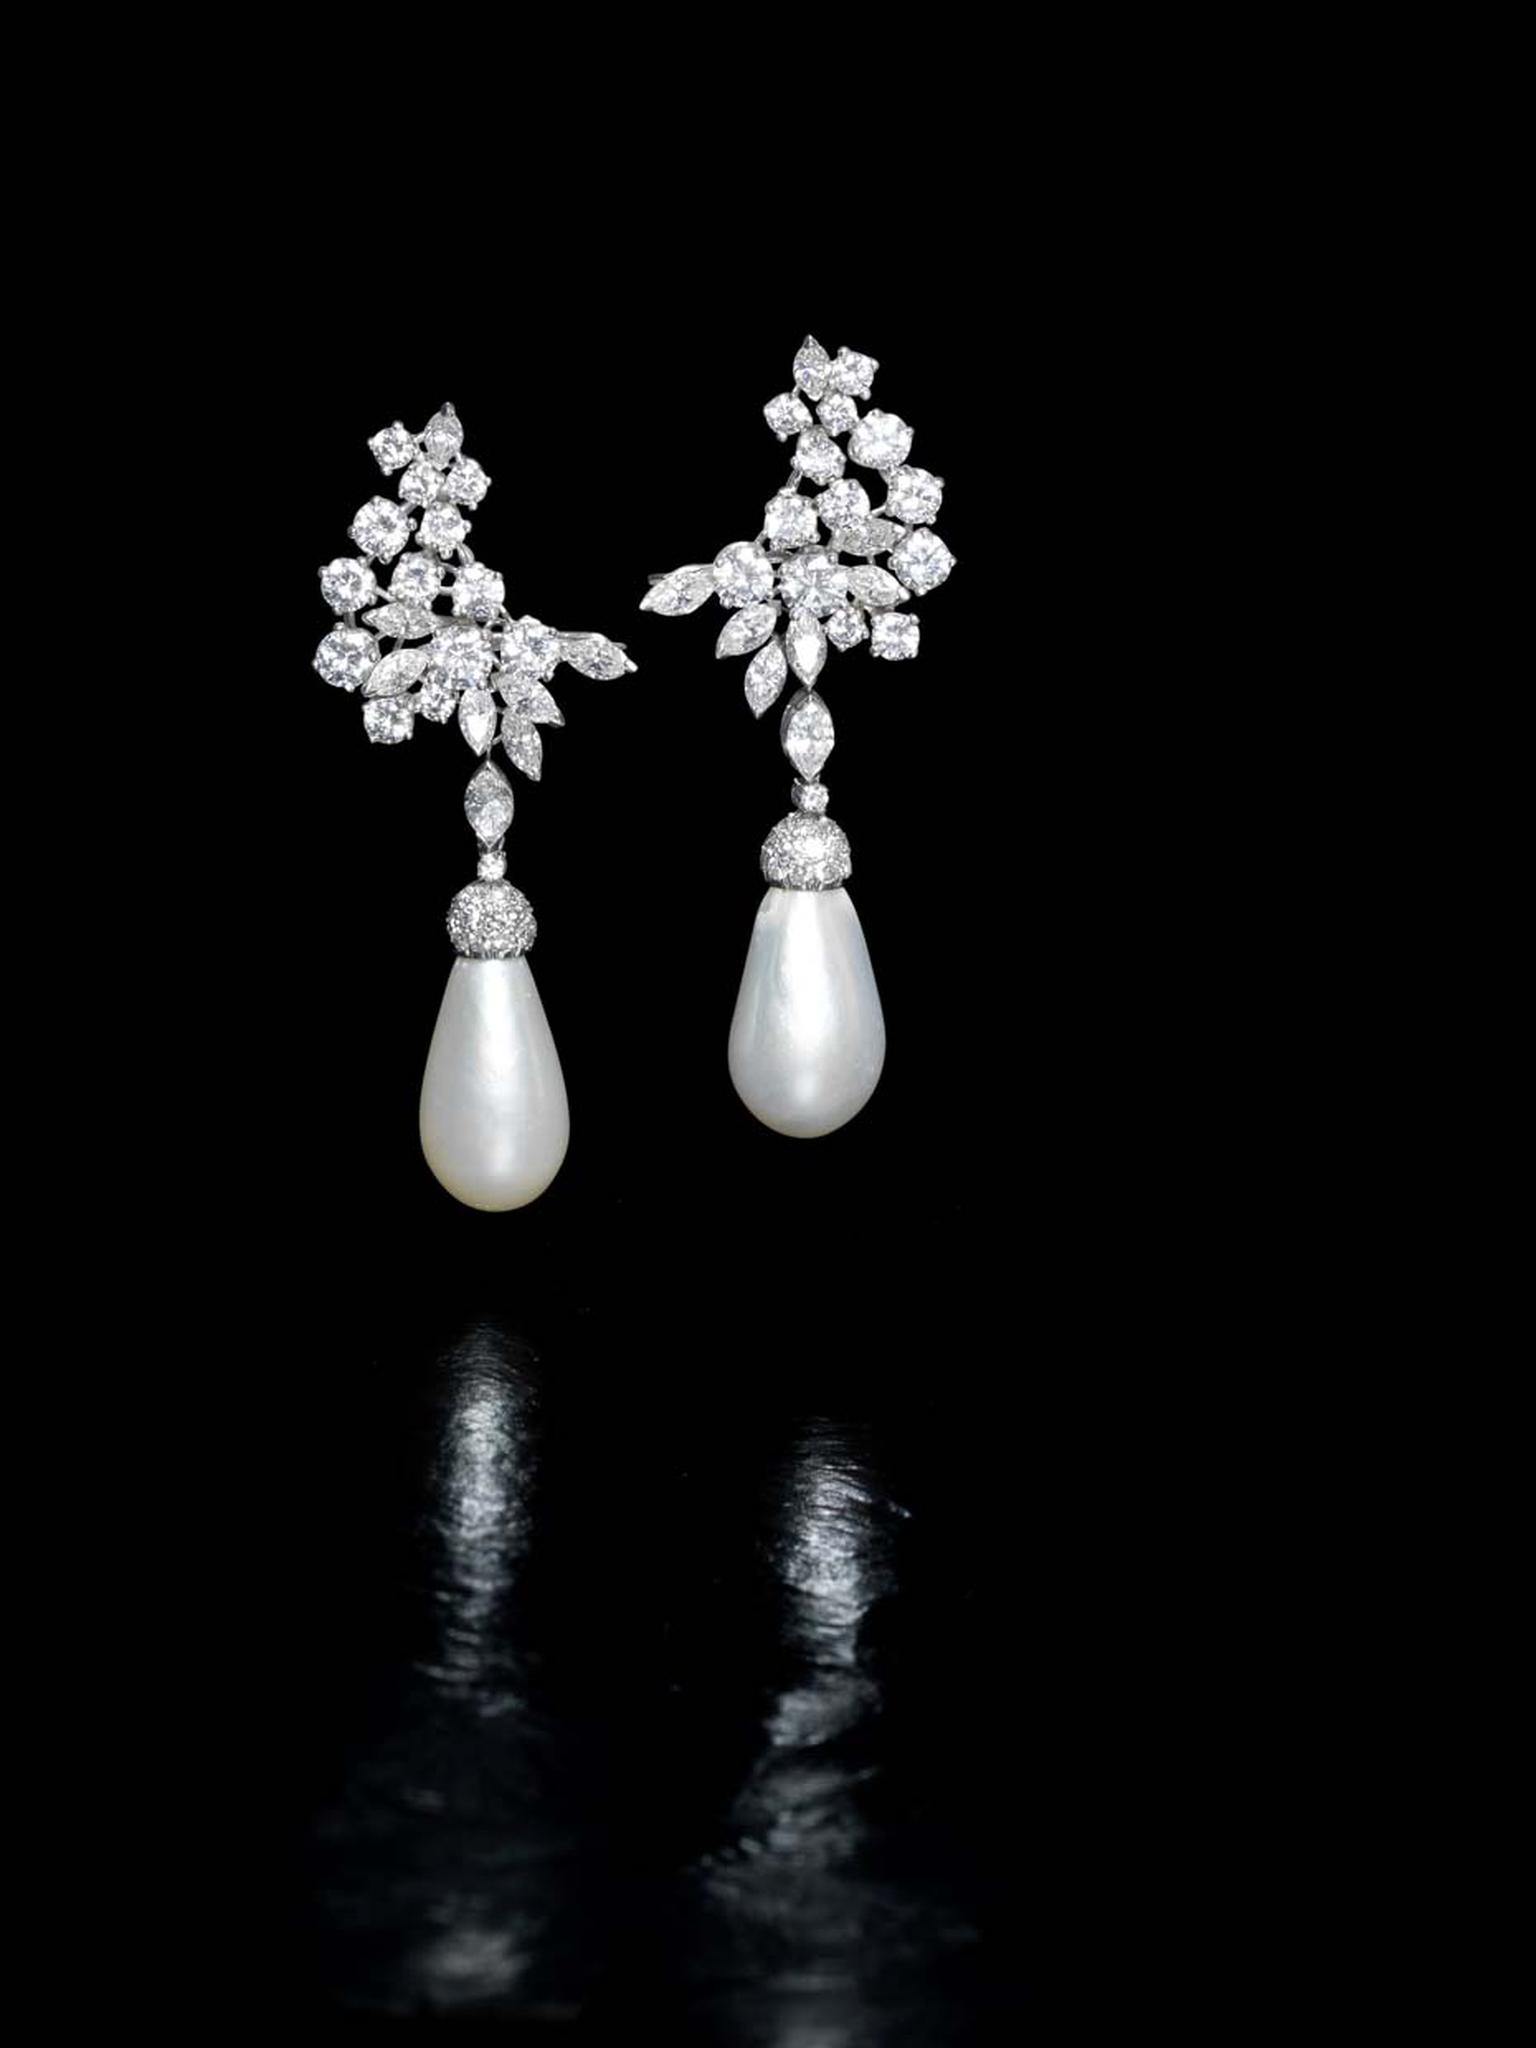 Lot 188, a pair of natural pearl and diamond (6ct) pendant earrings. Sold for £290,500 (estimate: £150,000-200,000)